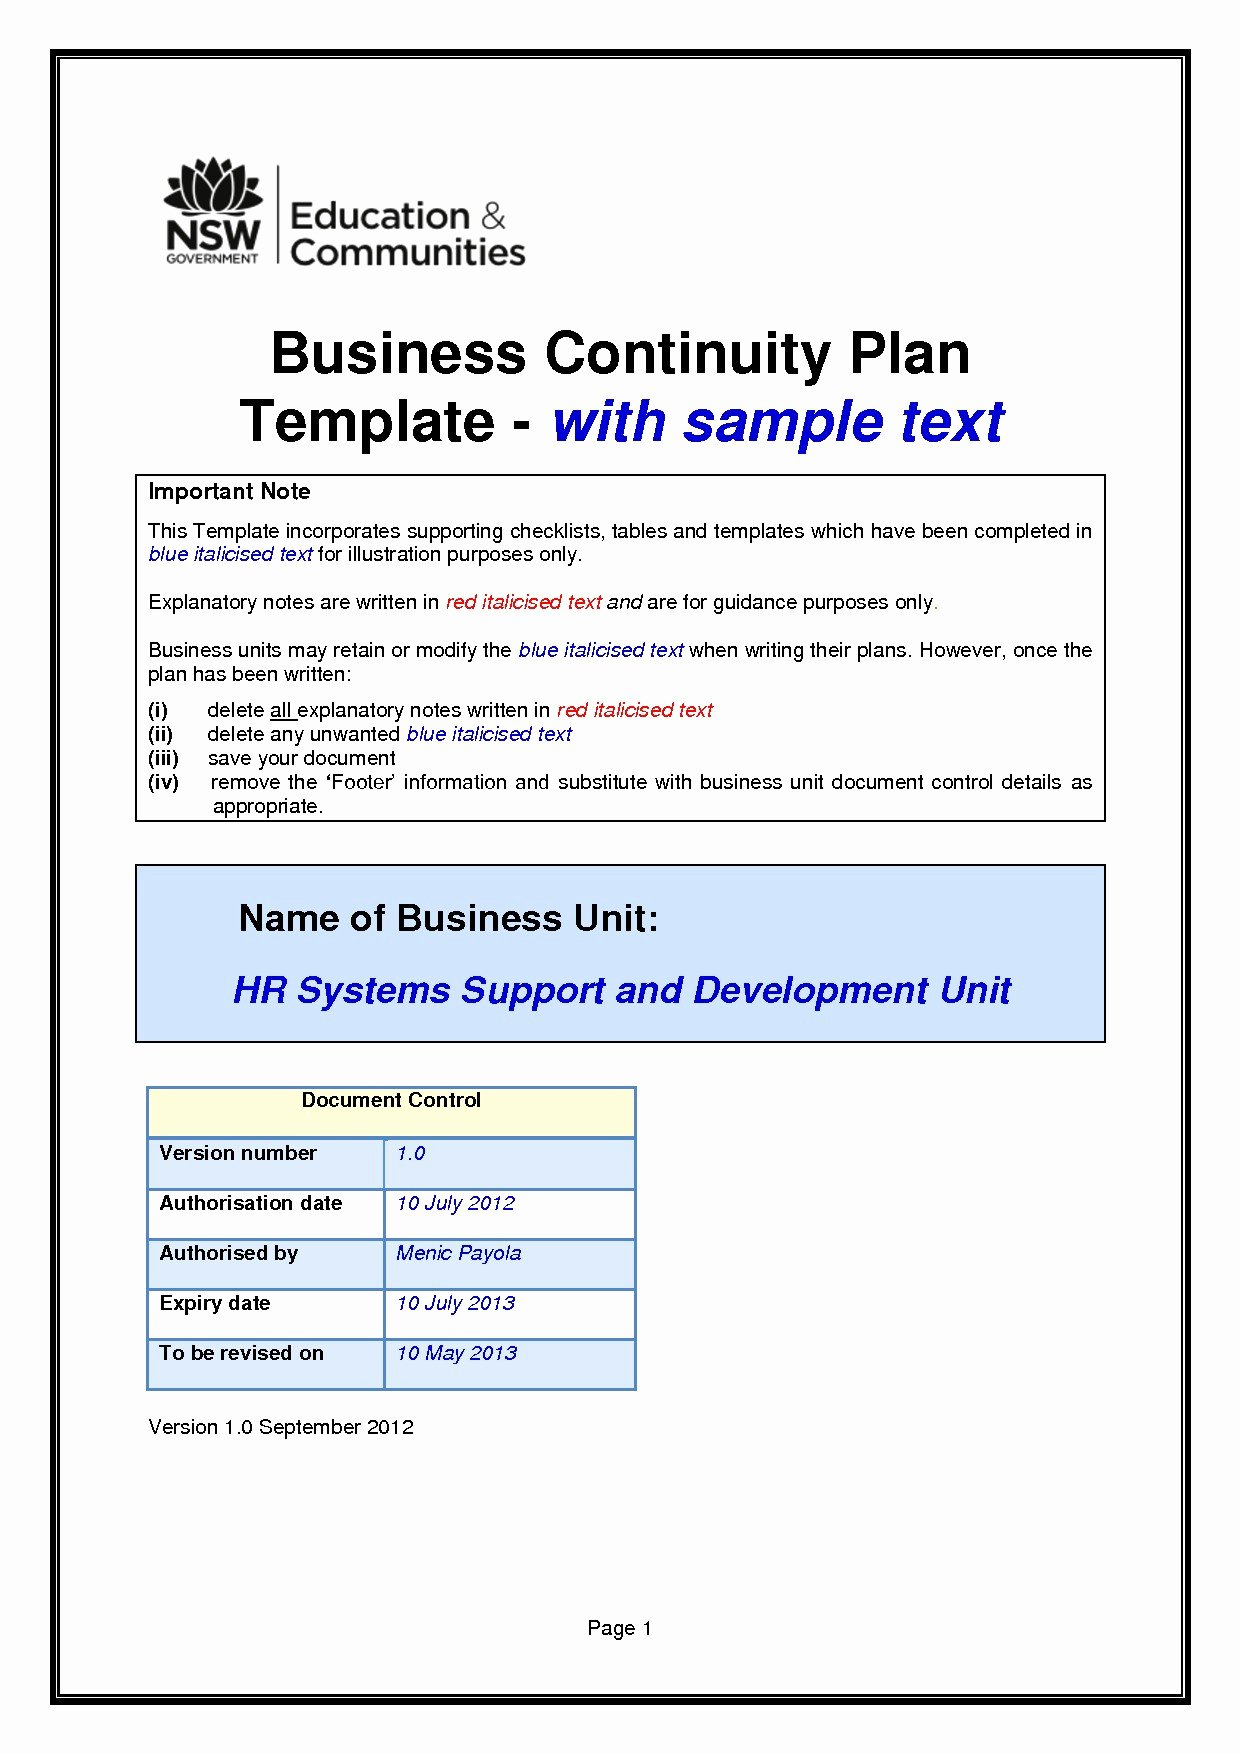 Technology Business Plan Template New 20 Business Continuity Plan Template Australia Valid